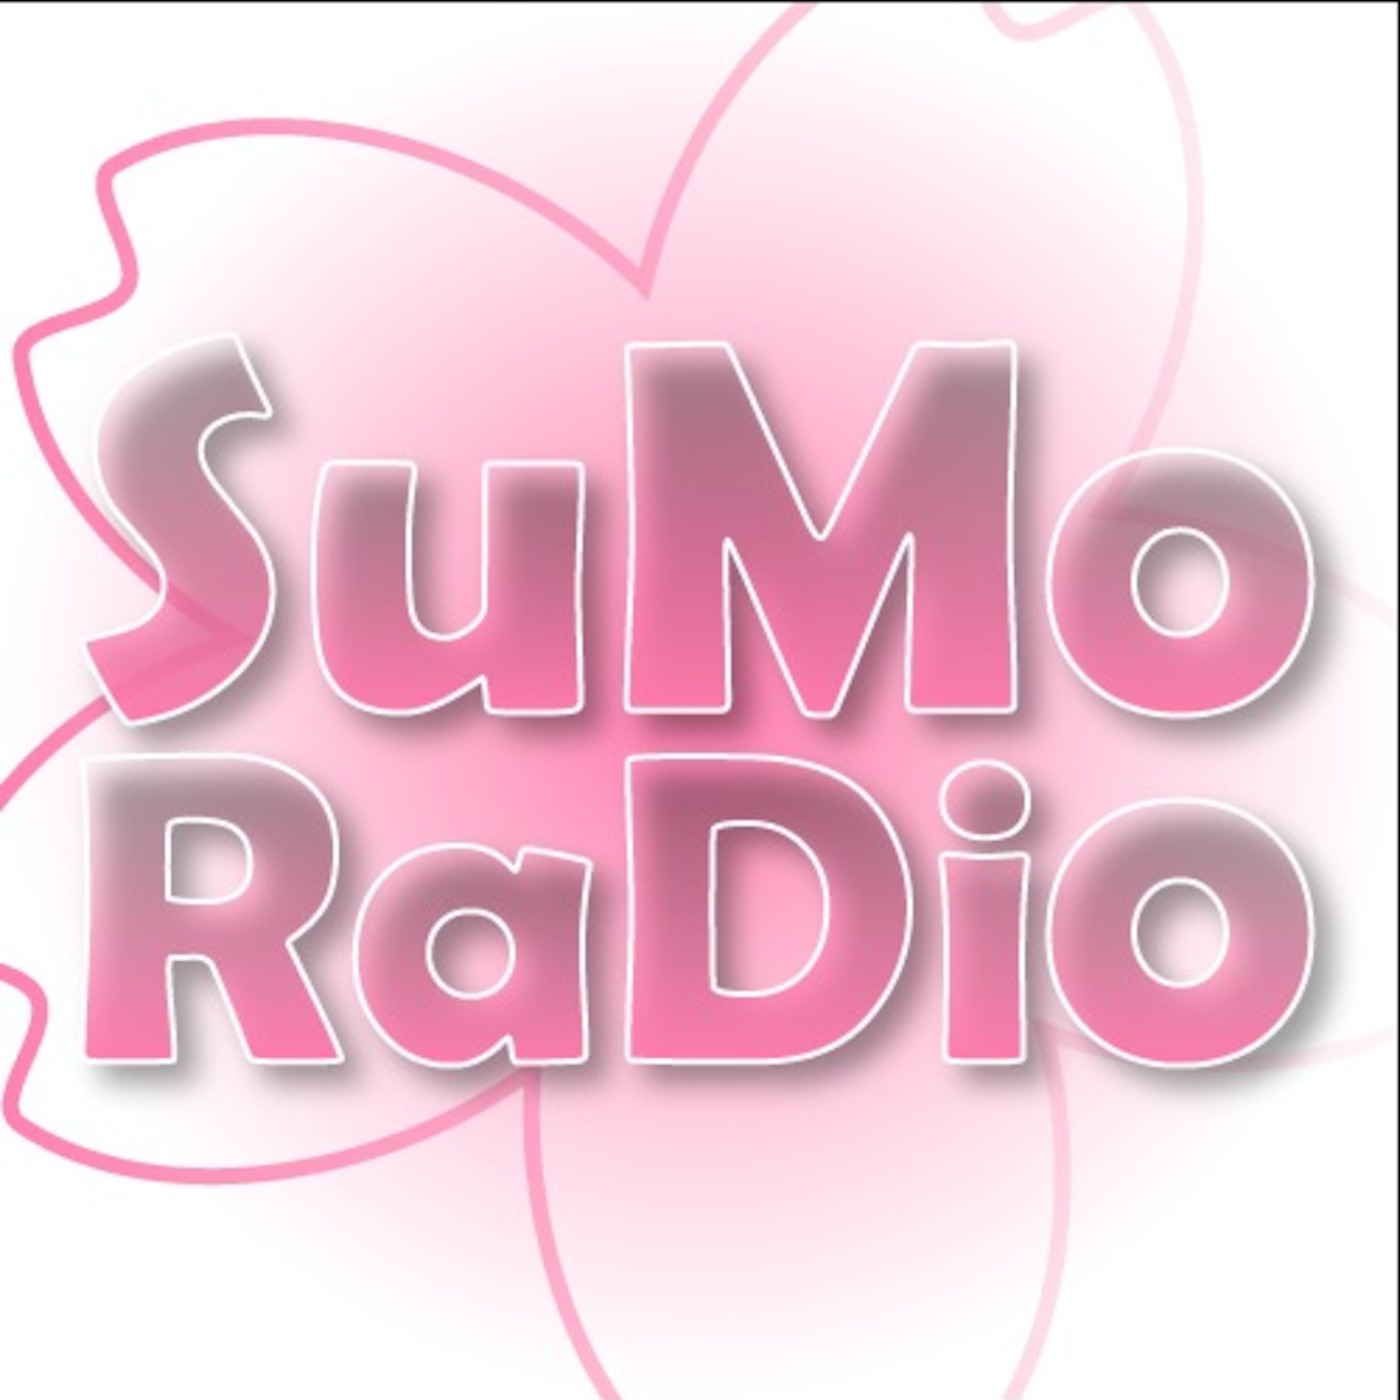 Sumo radio's Podcast